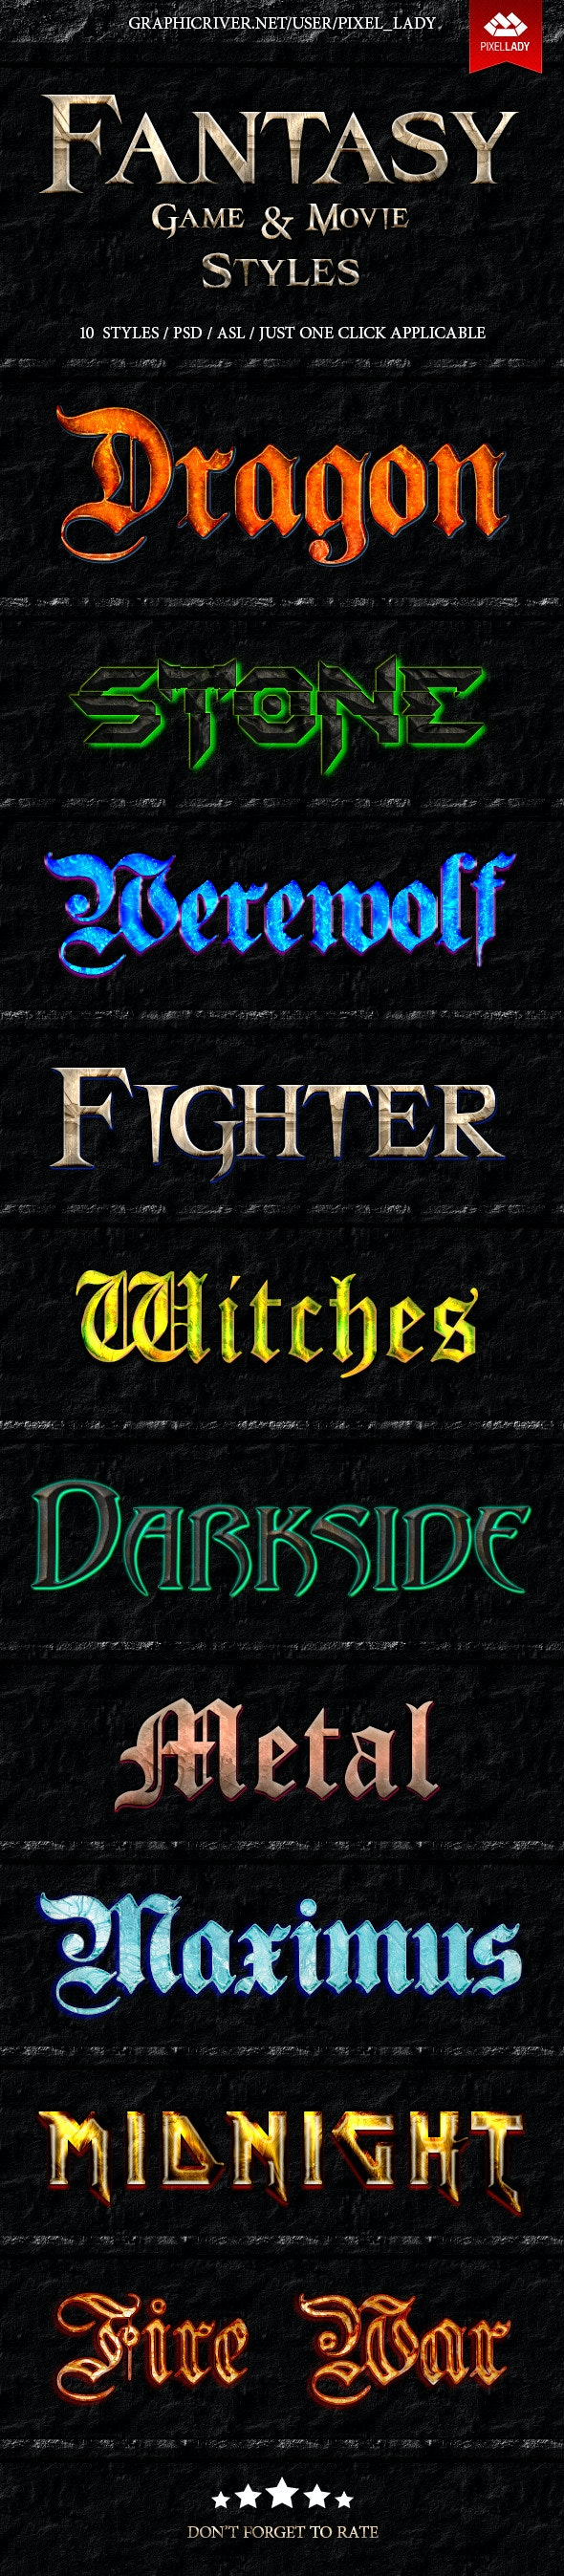 Fantasy Game and Movie Text Styles - Styles Photoshop